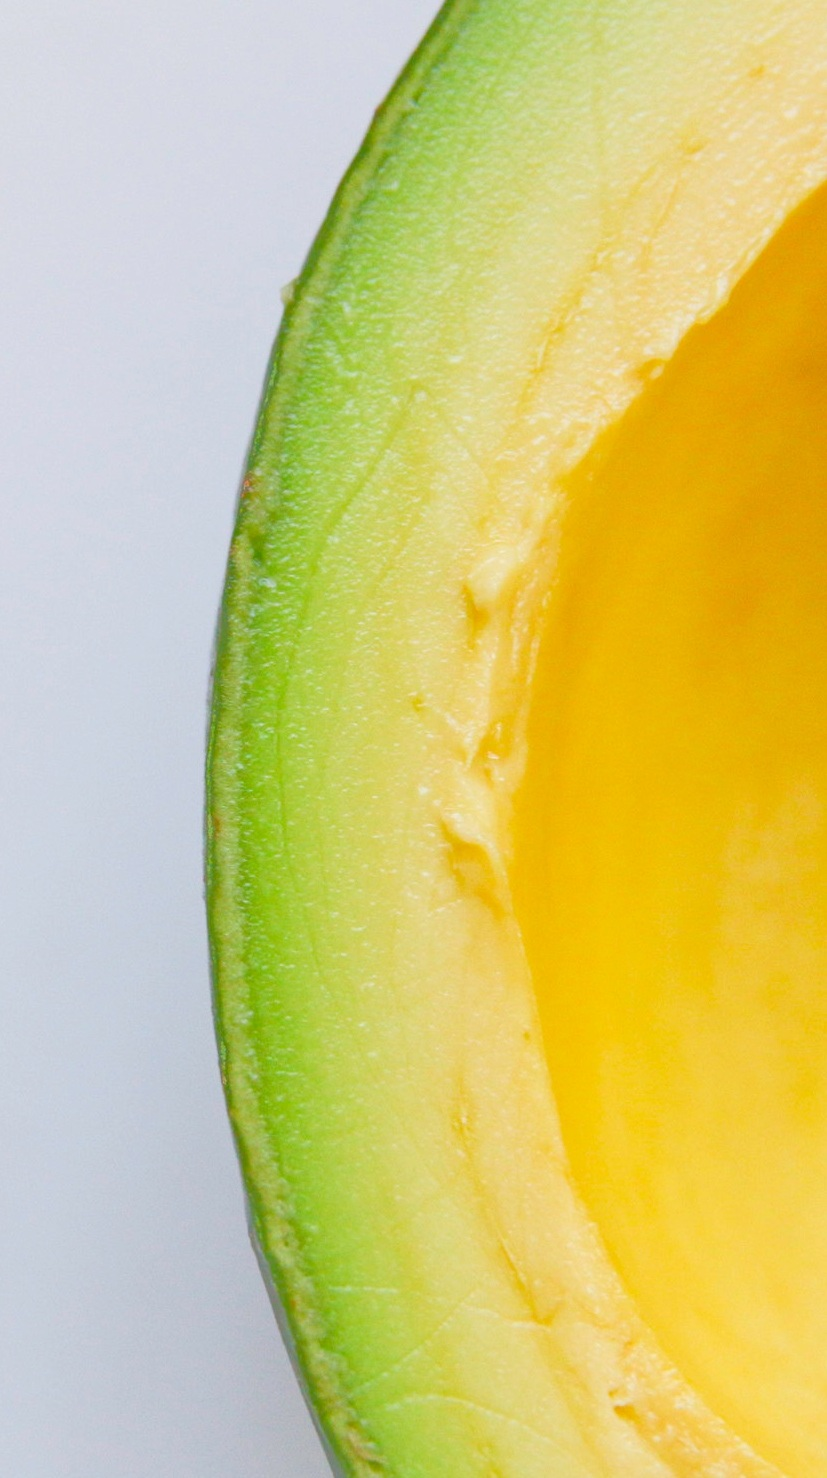 iii. avocado - The dark New England winter has moved into my apartment, an unwanted resident that seeps through the outdated furnaces. I now have to get avocados imported to welcome sun into my home, it's easier than exposing the space to a warmth that's never really there.I sometimes feel bad about eating them in the winter. But I've become addicted. I insert my knife into the top and glide the fruit around in a circular motion as the blade separates the textured skin to reveal a green type of heaven. One side, absent. The other, a bulging seed. I take joy in the moments where I drive the sharp edge of the knife into the core, twisting and freeing it from its one purpose: providing life.We don't speak anymore.I've driven wedges of blades in between many things to scorch the burn. Like eye-contact. Or knowing what I want, how to want, not saying what I mean, feeling joy when its received.Father moved to Texas—separating fruit from loins is a difficult process, but he managed well. Mastered it, actually.When I see father daughter dances at weddings I sneak to the bar and order an extra martini. When I think of inventions, like telephones or planes, I wonder how he never found out about their practicalities.I can rely on some things. Like the assurance that avocados are green in the middle, sometimes yellow. They always have pits that are ripped out before enjoyment. I stopped making guacamole years ago. I hated salvaging the seed to keep the aesthetic. When air dims the fruits vibrancy, it turns color. I was tired of taking a spoon to the insides and stirring in the bad with the good. I stopped buying lemons to preserve perfection.